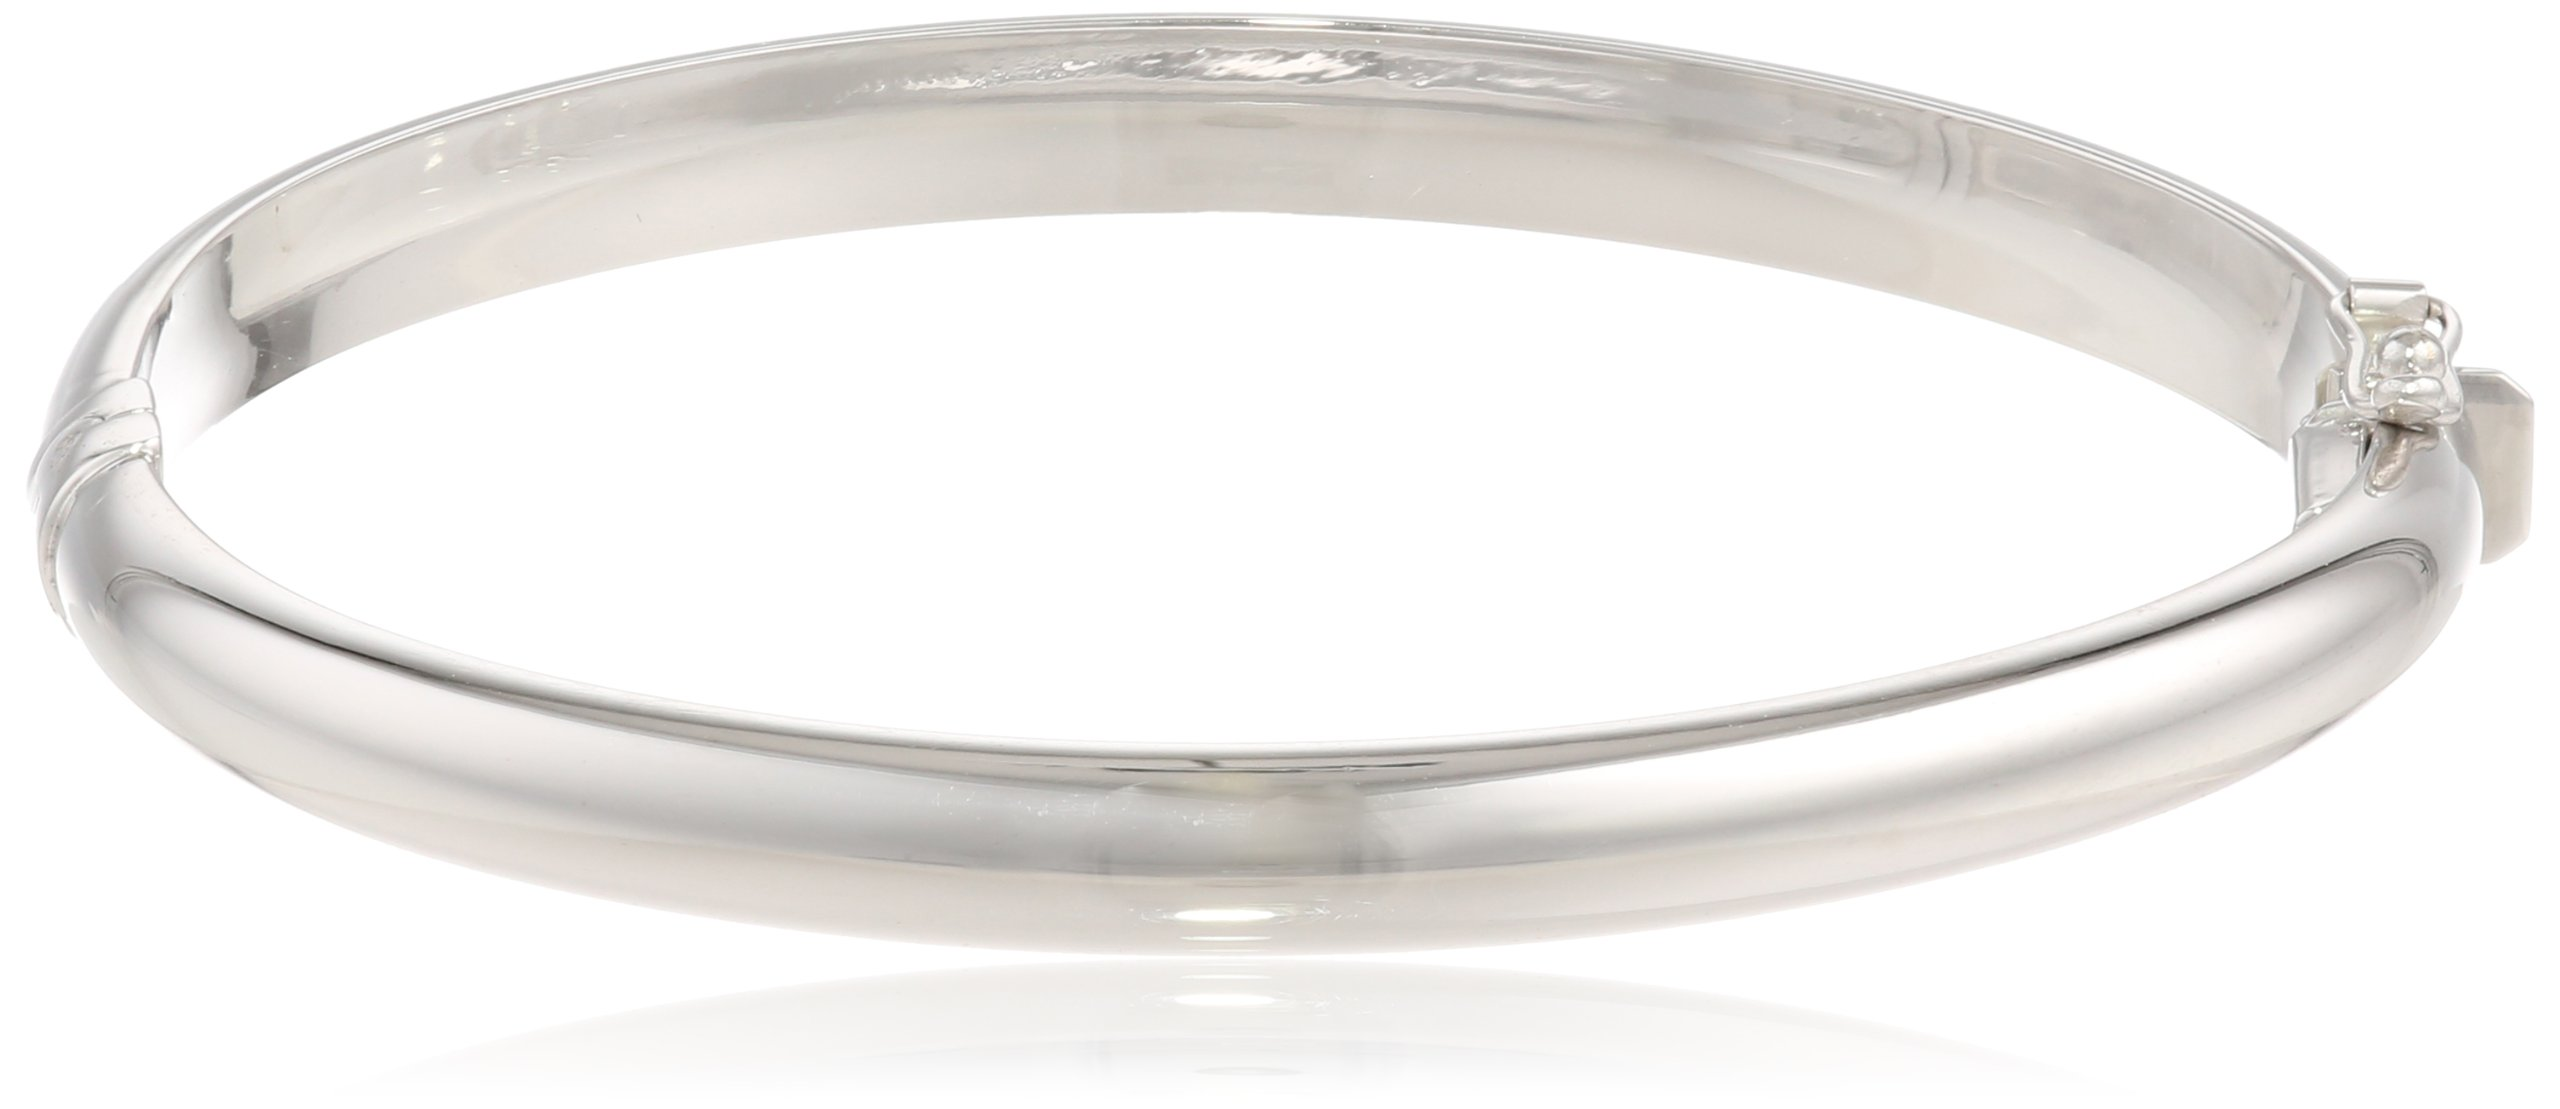 10k White Gold 6.1mm Polished Dome Bangle Bracelet, 2 1/2''